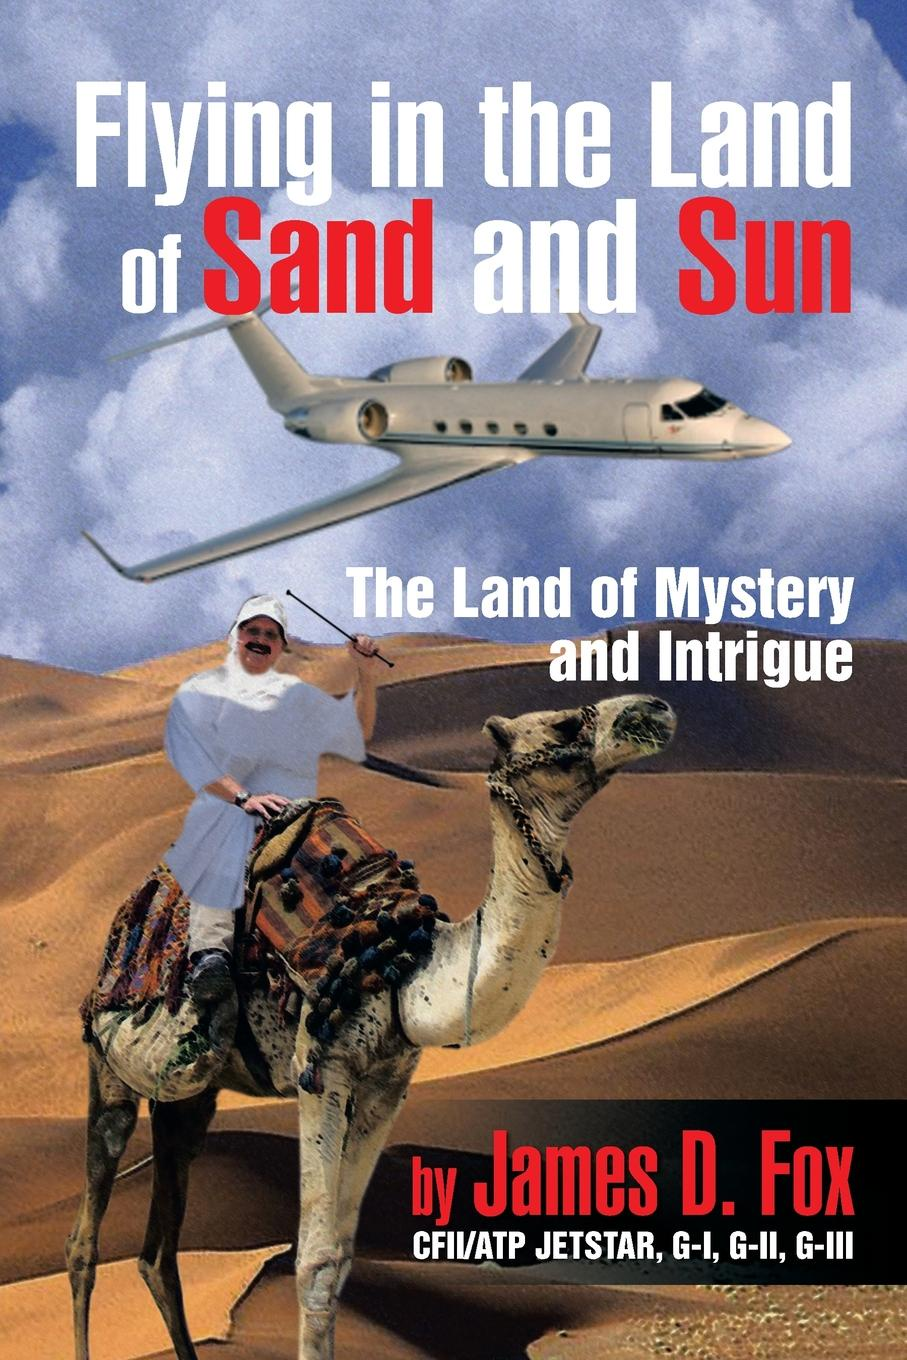 лучшая цена James D. Fox Flying in the Land of Sand and Sun. The Land of Mystery and Intrigue